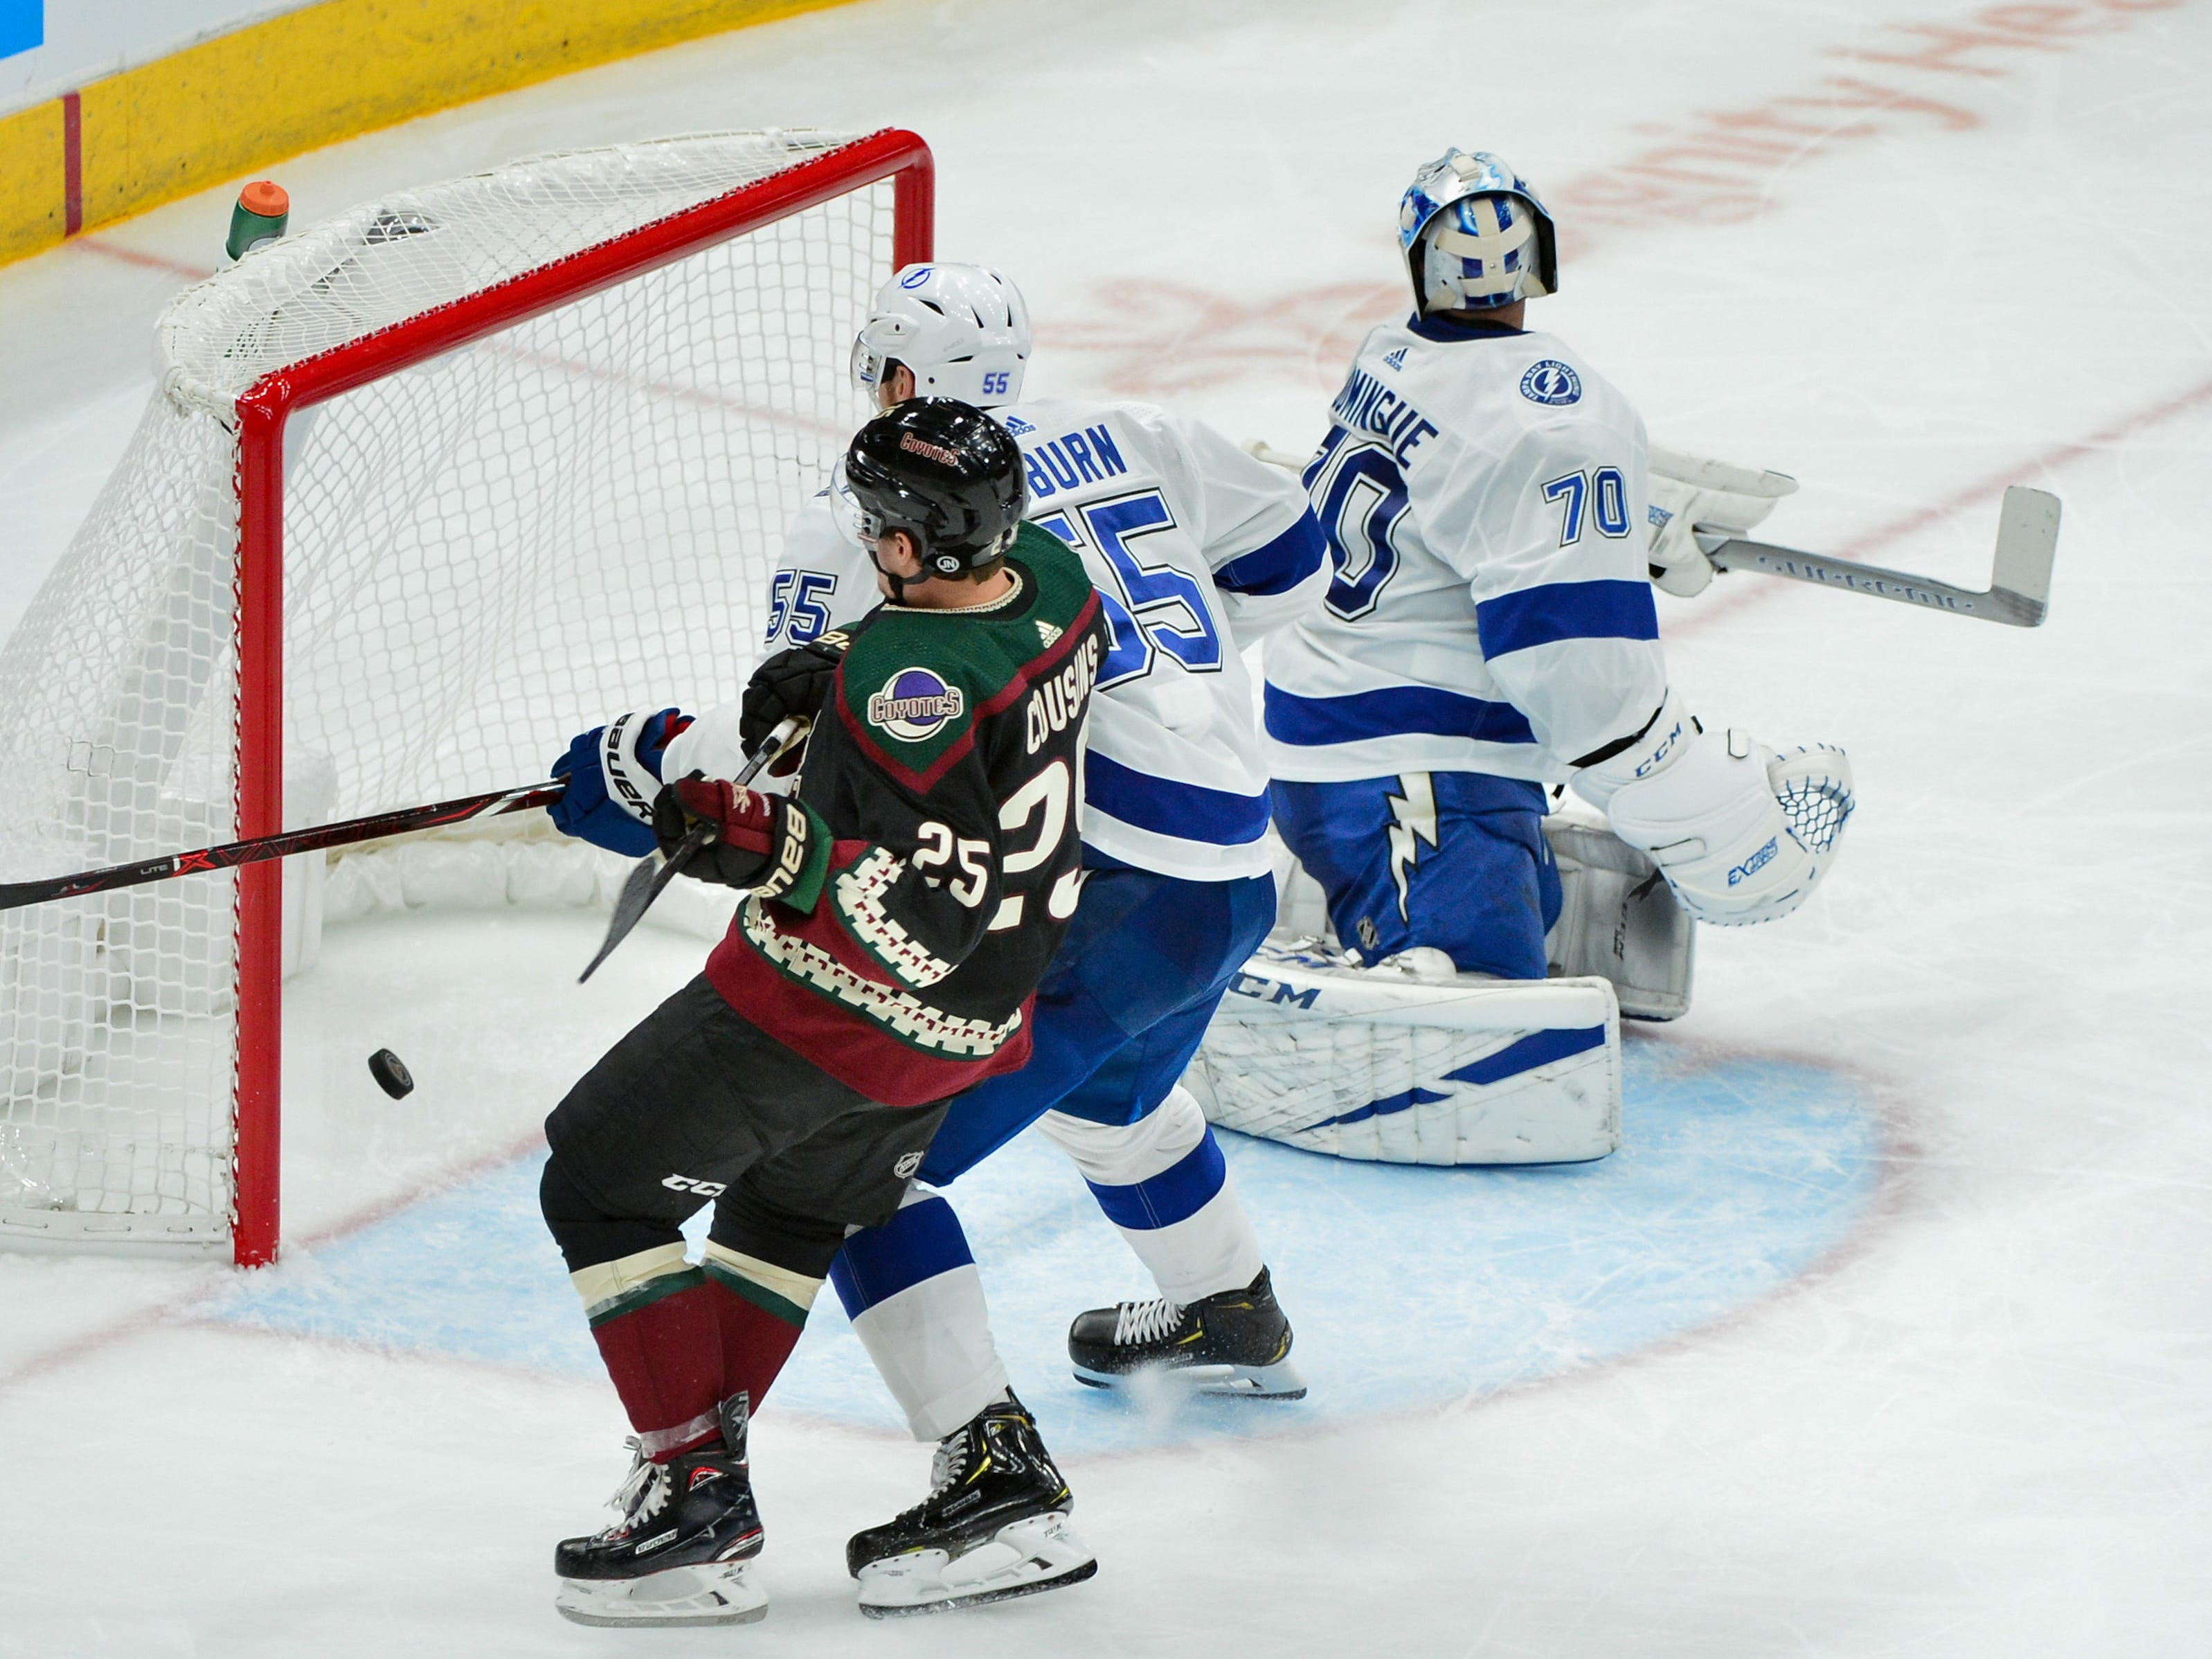 Oct 27, 2018; Glendale, AZ, USA; Arizona Coyotes center Vinnie Hinostroza (not pictured) scores a goal on Tampa Bay Lightning goaltender Louis Domingue (70) during the second period at Gila River Arena. Mandatory Credit: Matt Kartozian-USA TODAY Sports